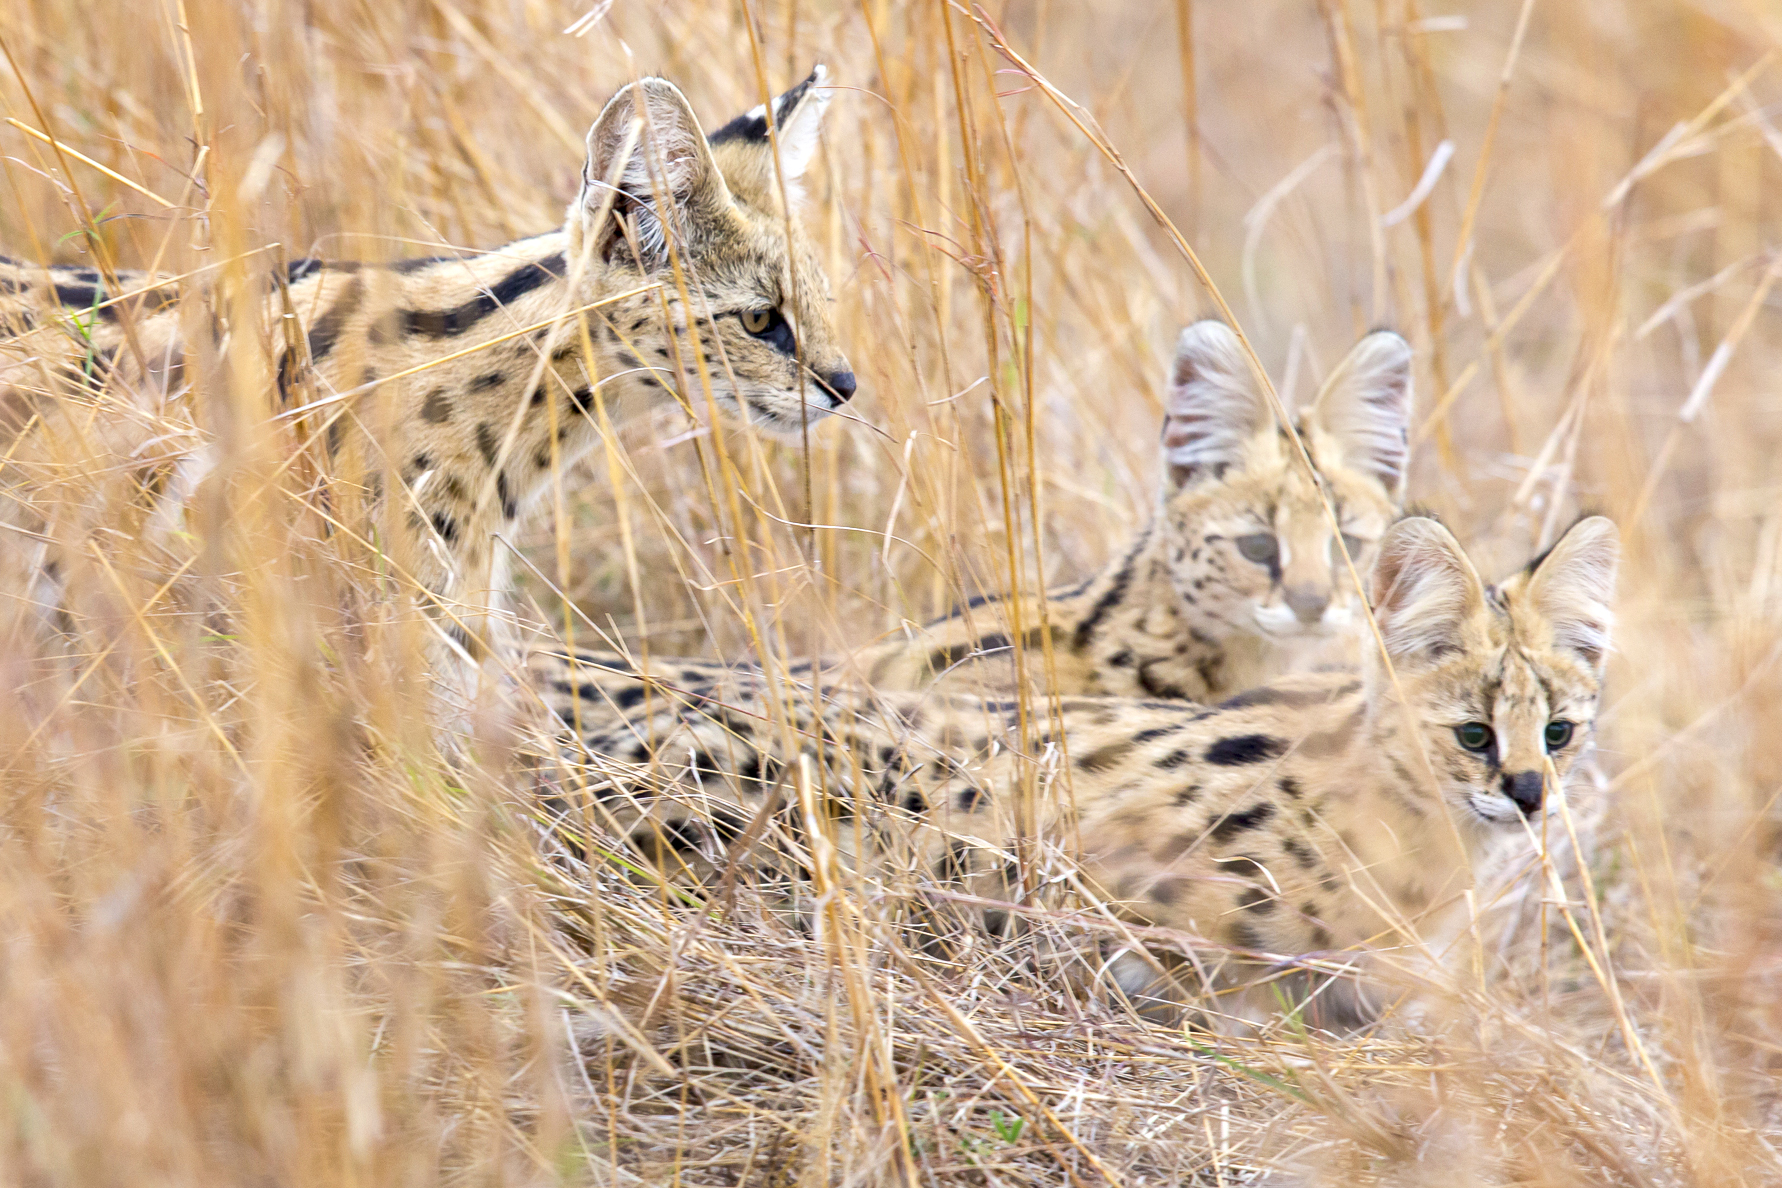 http://www.c4photosafaris.com/uploader/images/Serval_with_Kittens.jpg